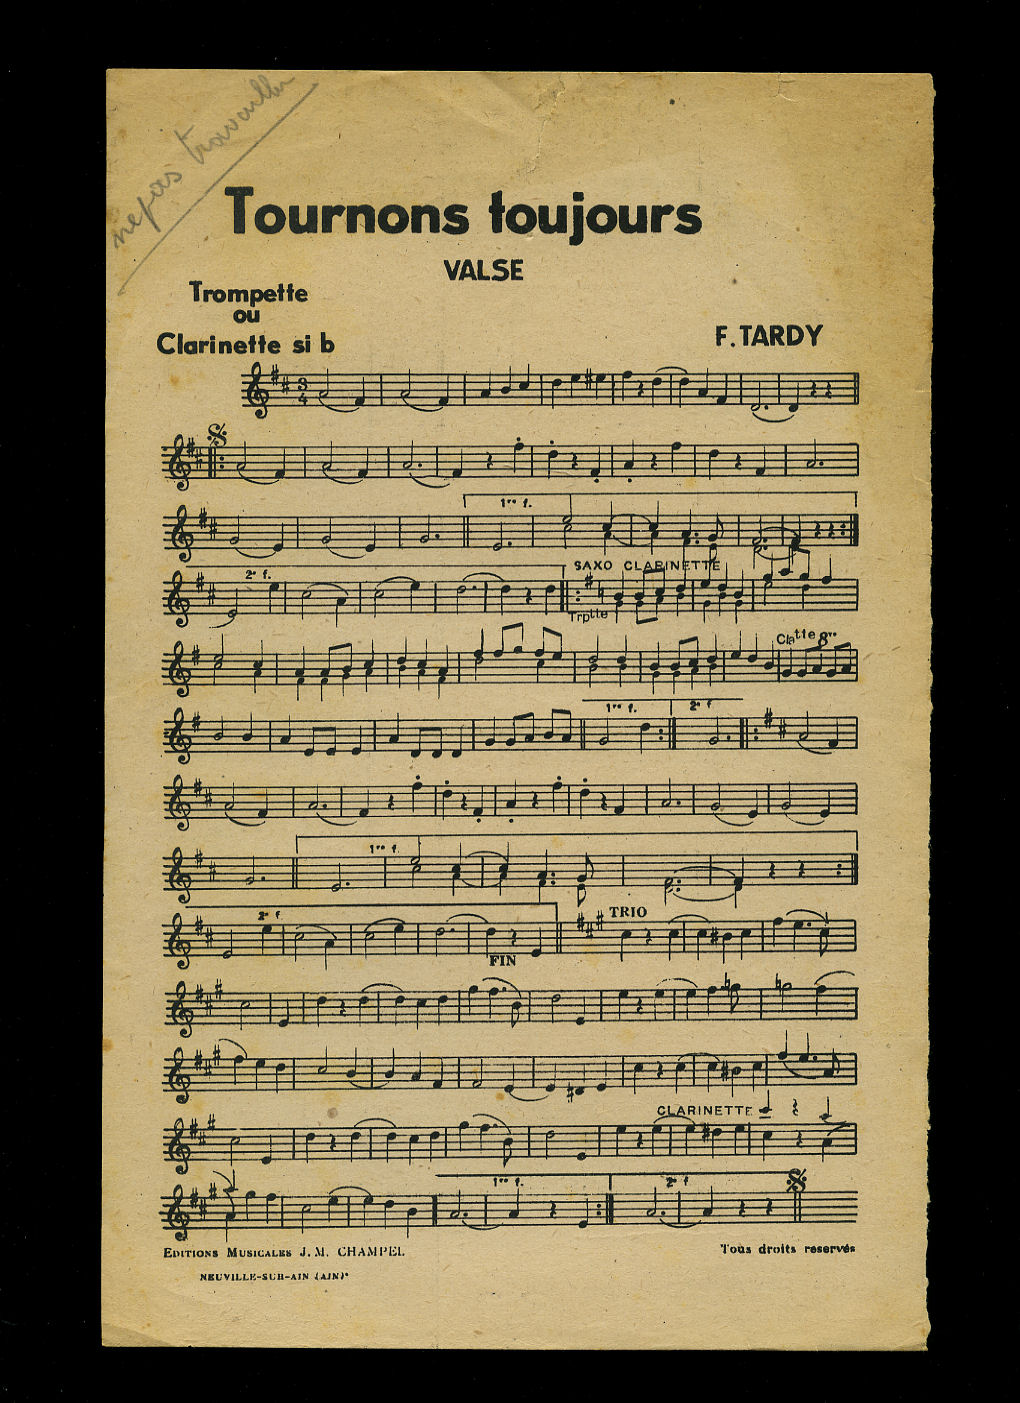 F. TARDY AND L. BARLET (MUSIC) - Tournons Toujours (Valse) | Fête A Kembs (Valse) [Musicians Vintage French Sheet Music for the Trumpet]